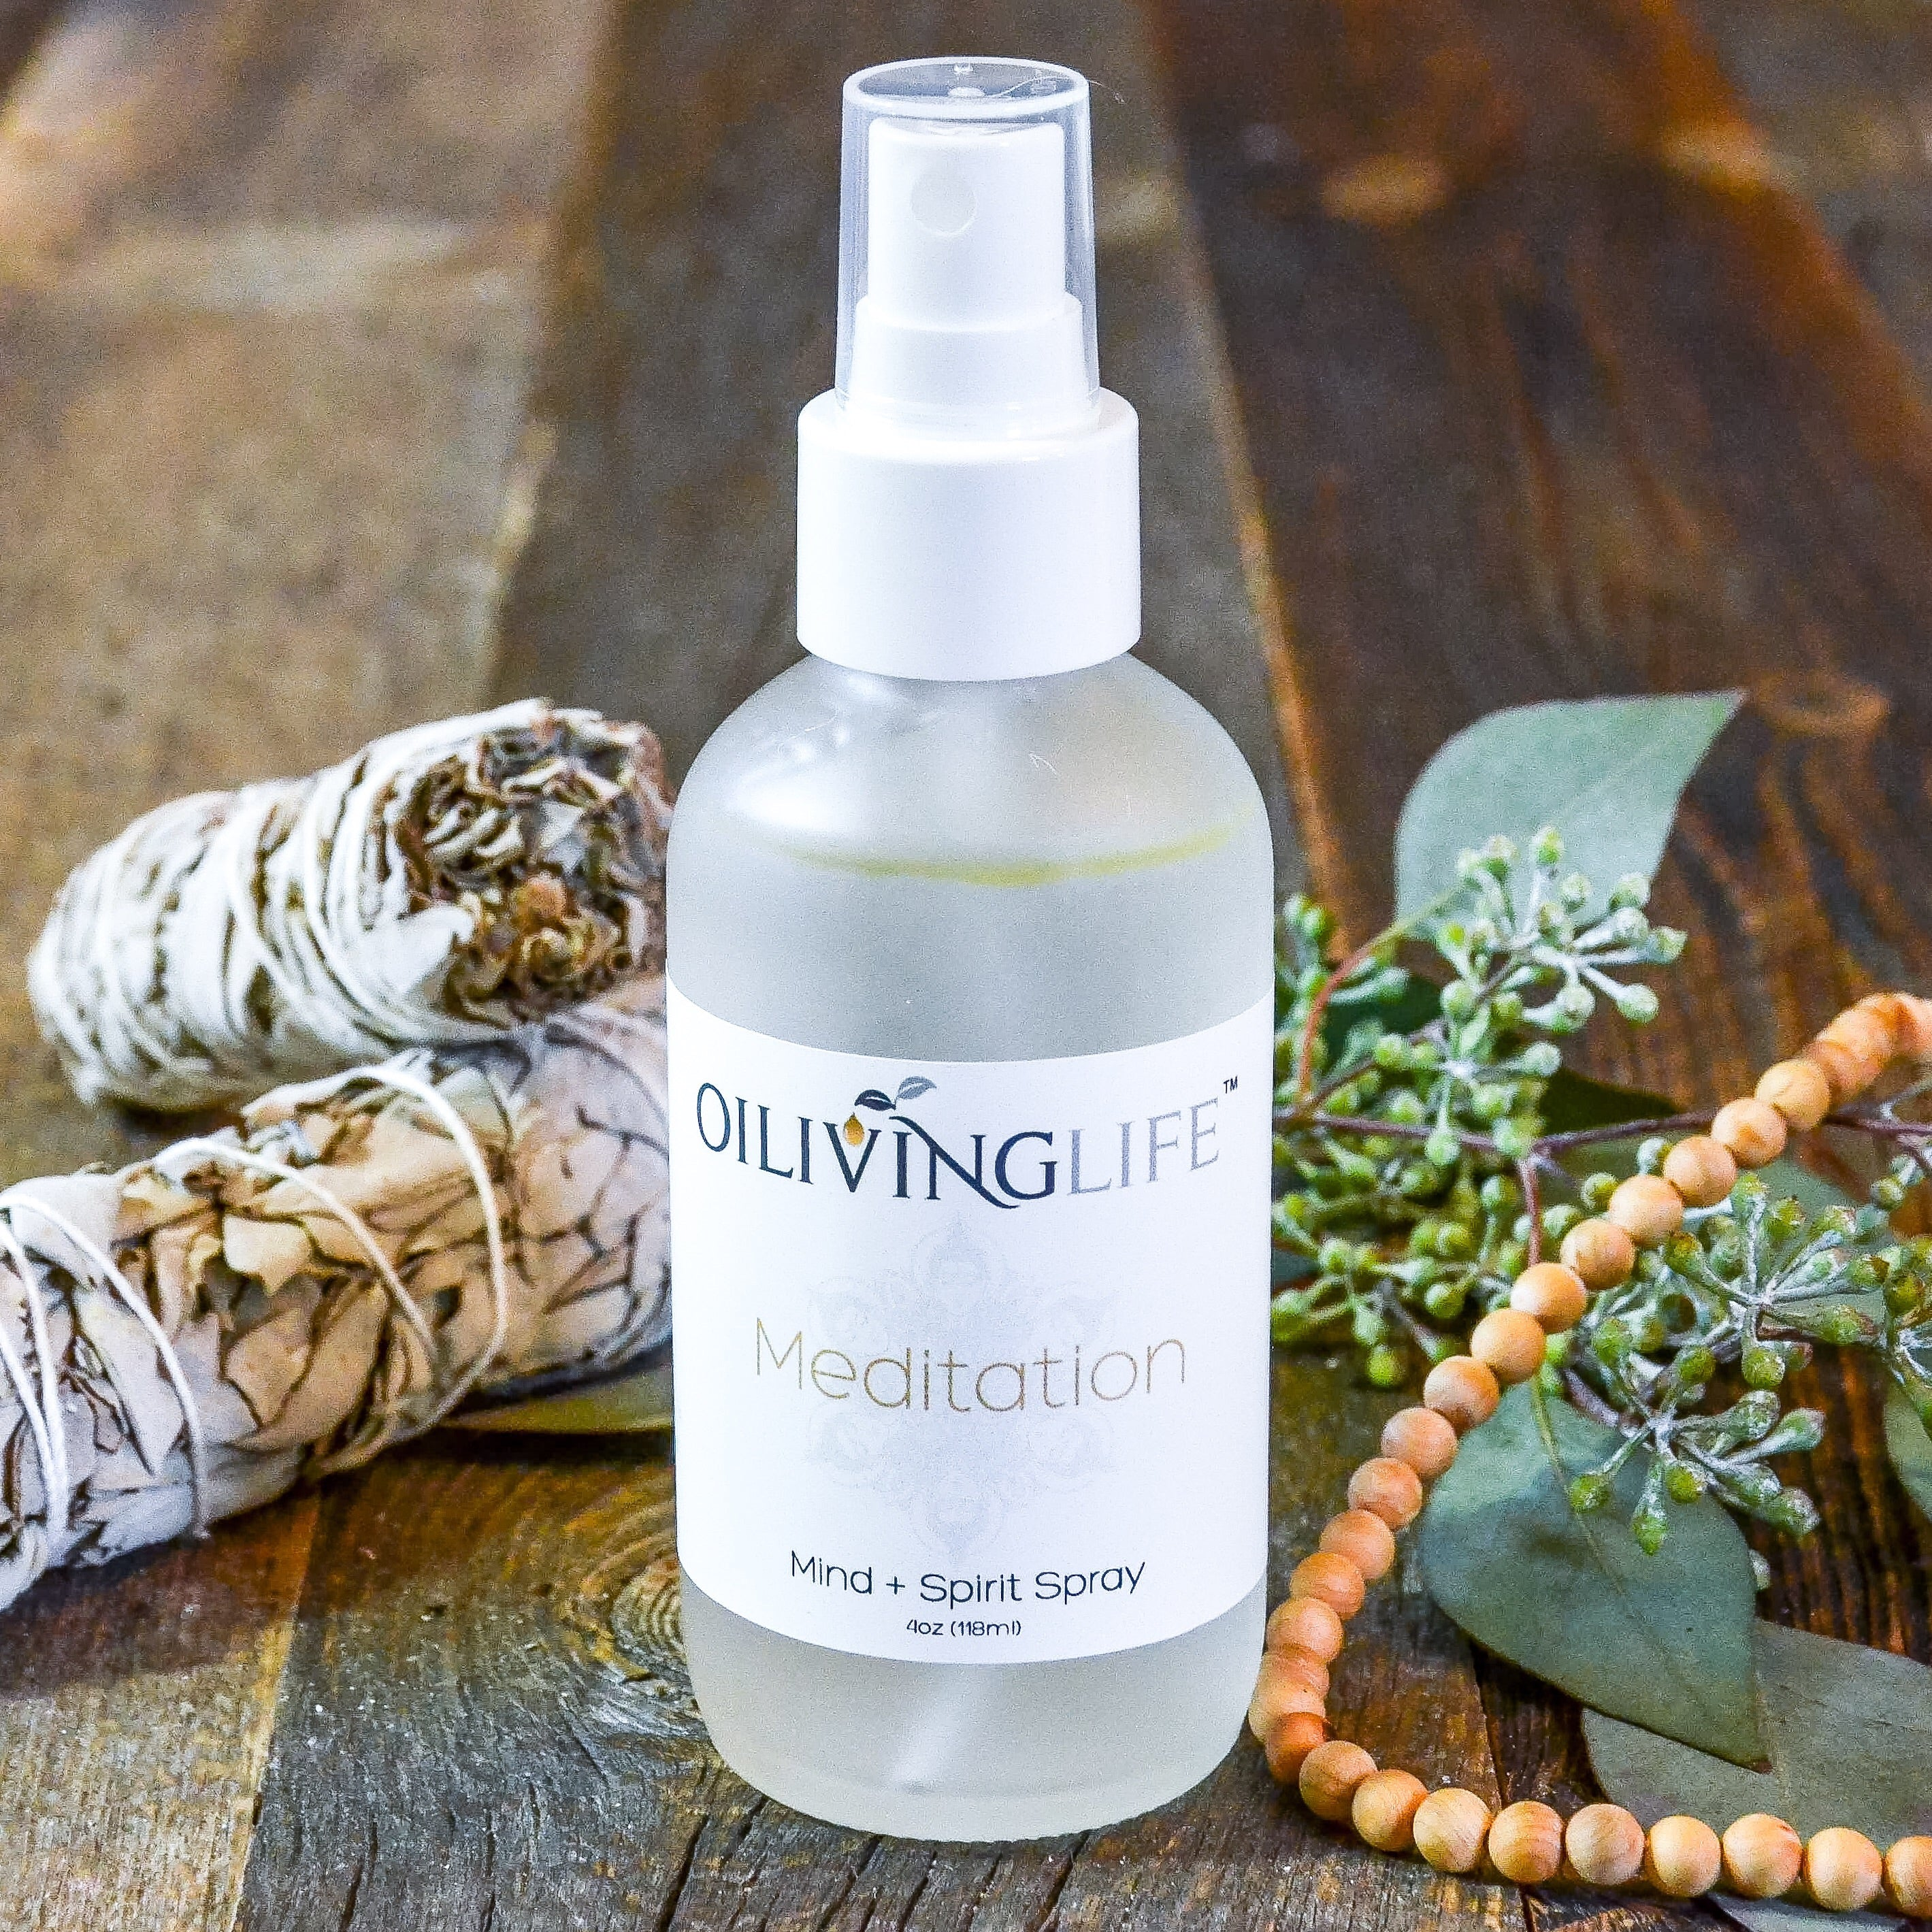 Meditation Mind+Spirit Spray - OilivingLife